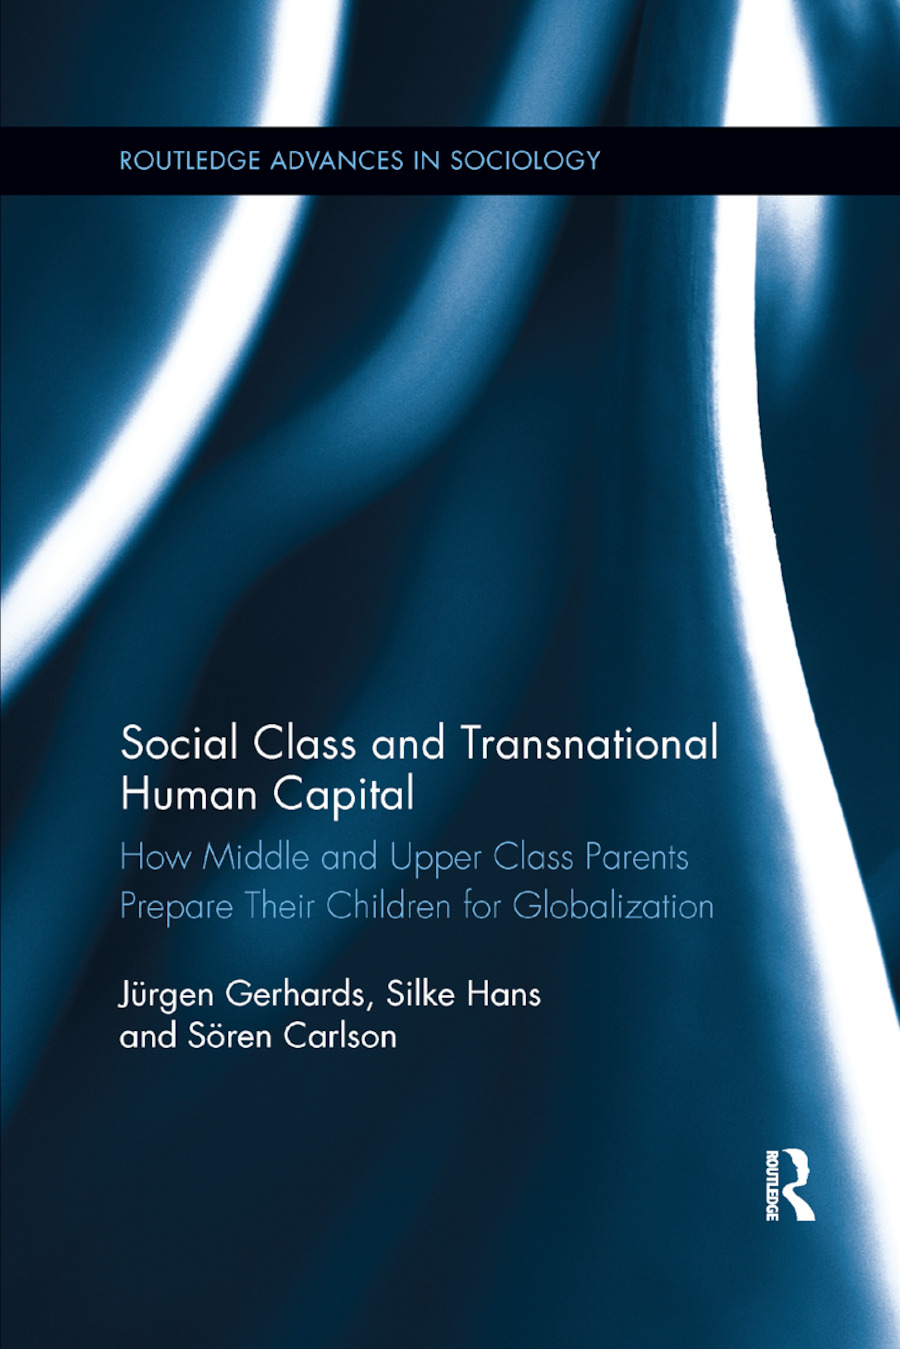 Social Class and Transnational Human Capital: How Middle and Upper Class Parents Prepare Their Children for Globalization book cover